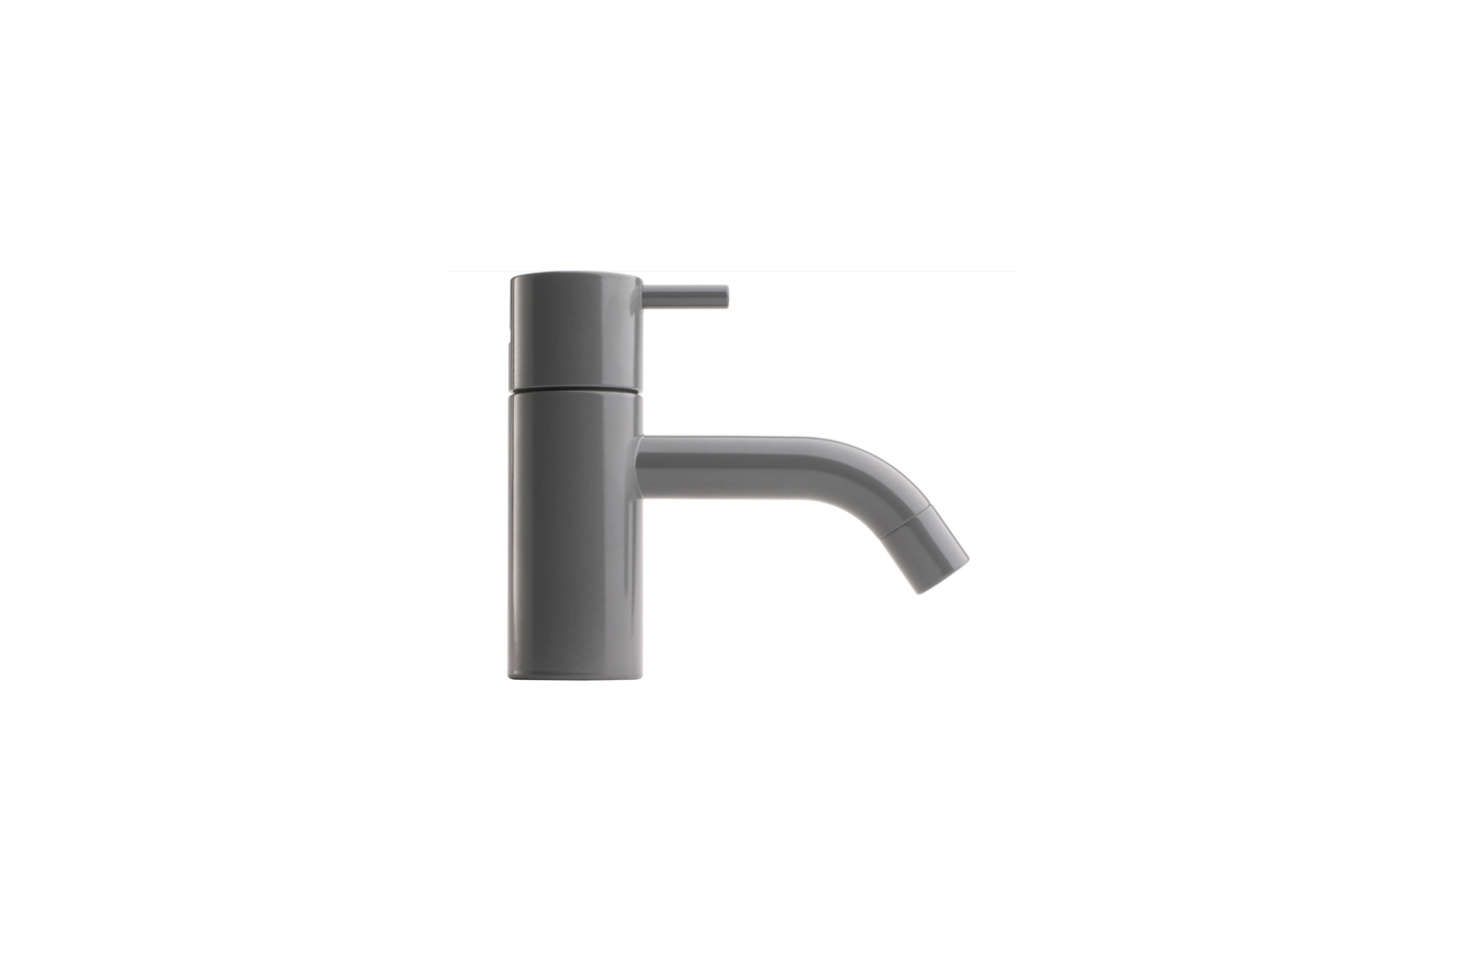 Another model from Arne Jacobsen, the Vola Bathroom Faucet HVdata-src=